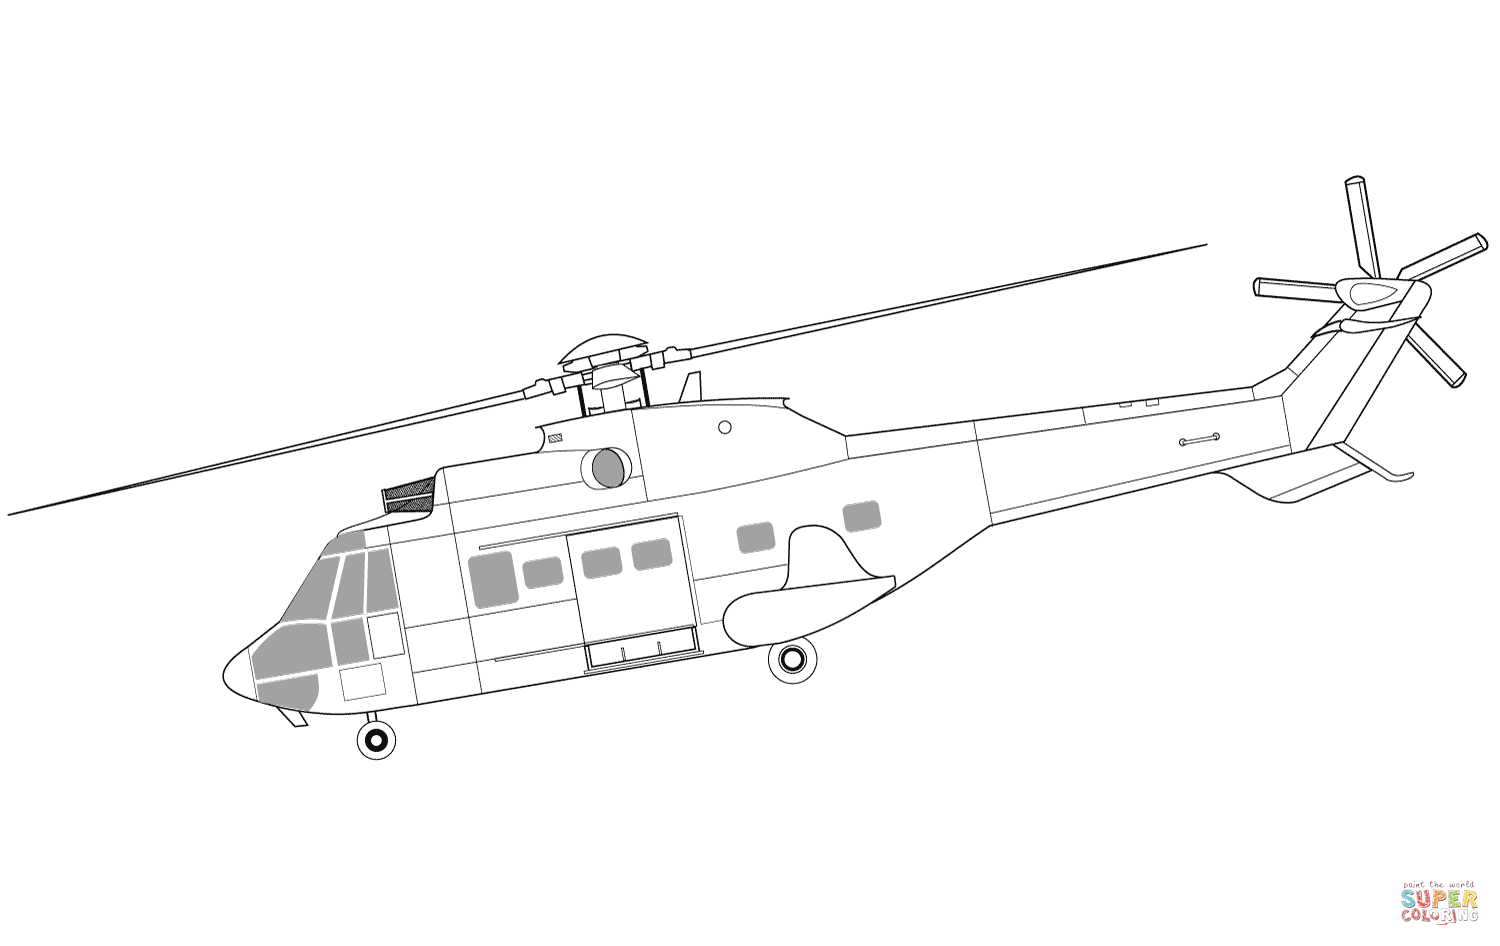 Eurocopter AS332 Super Puma Helicopter coloring page